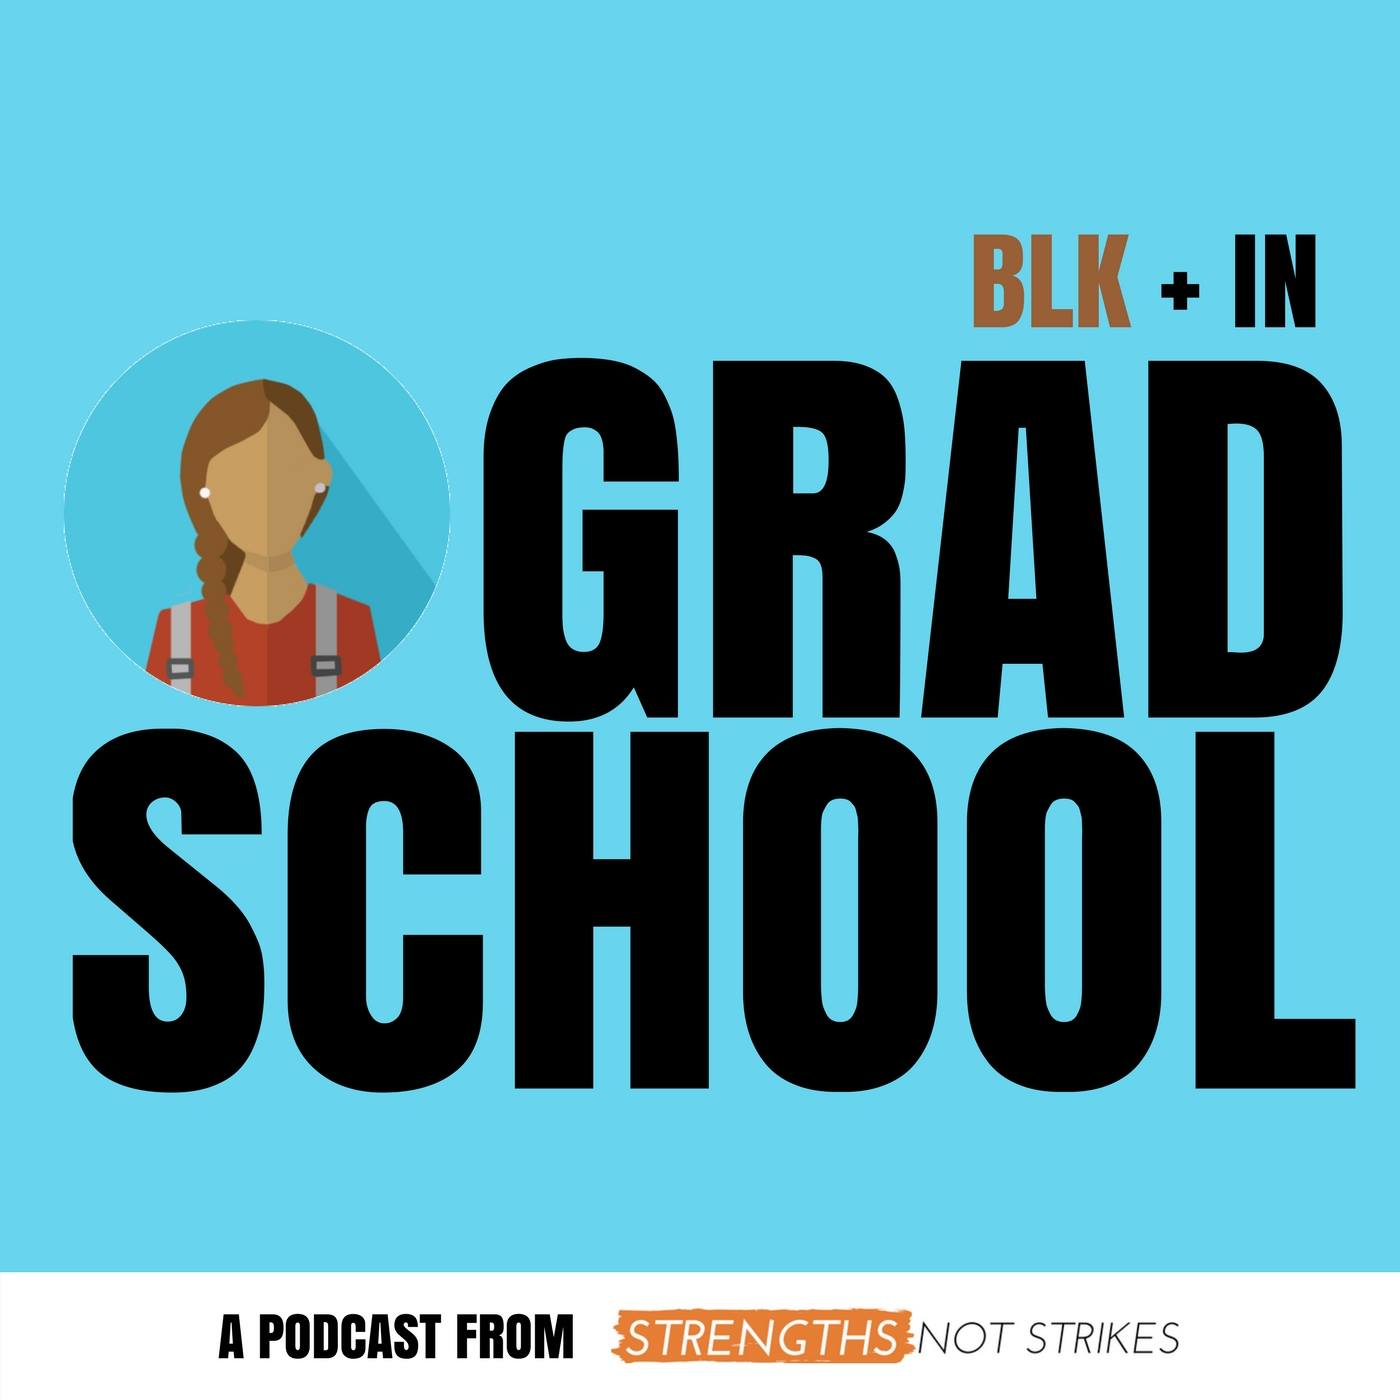 Blk + In Grad School - An audioblog created to encourage and inspire women + people of color to and through the grad school struggle.